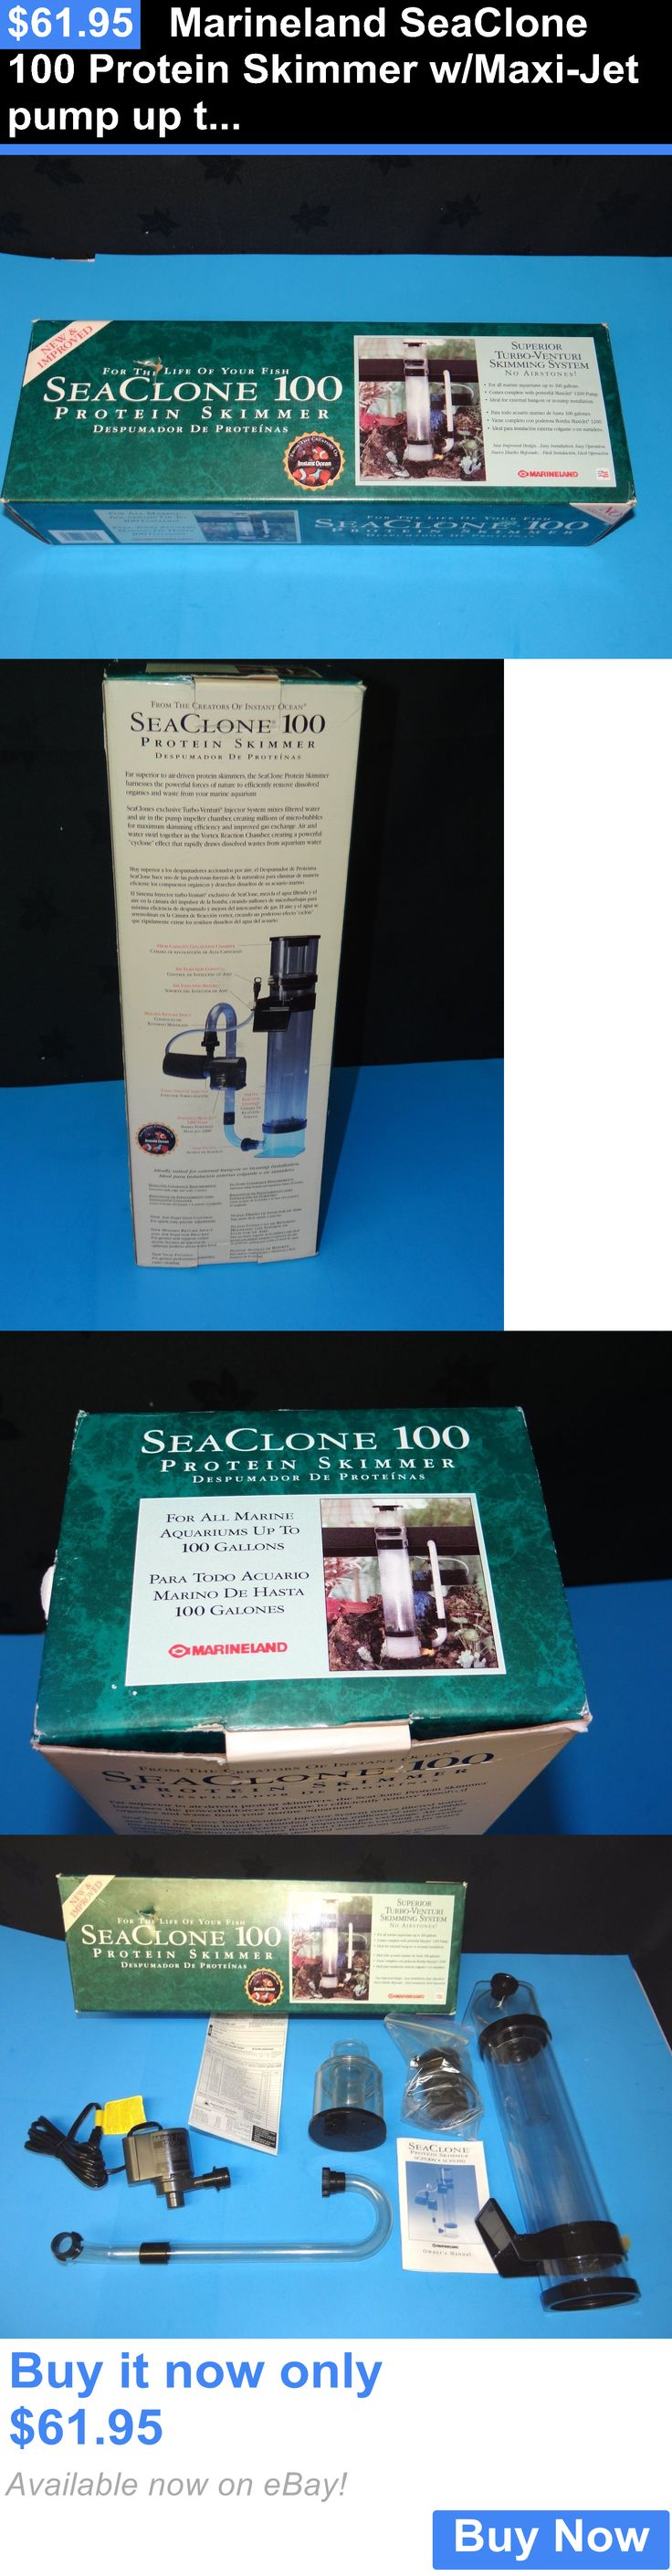 Animals Fish And Aquariums: Marineland Seaclone 100 Protein Skimmer W/Maxi-Jet Pump Up To 100 Gallons BUY IT NOW ONLY: $61.95